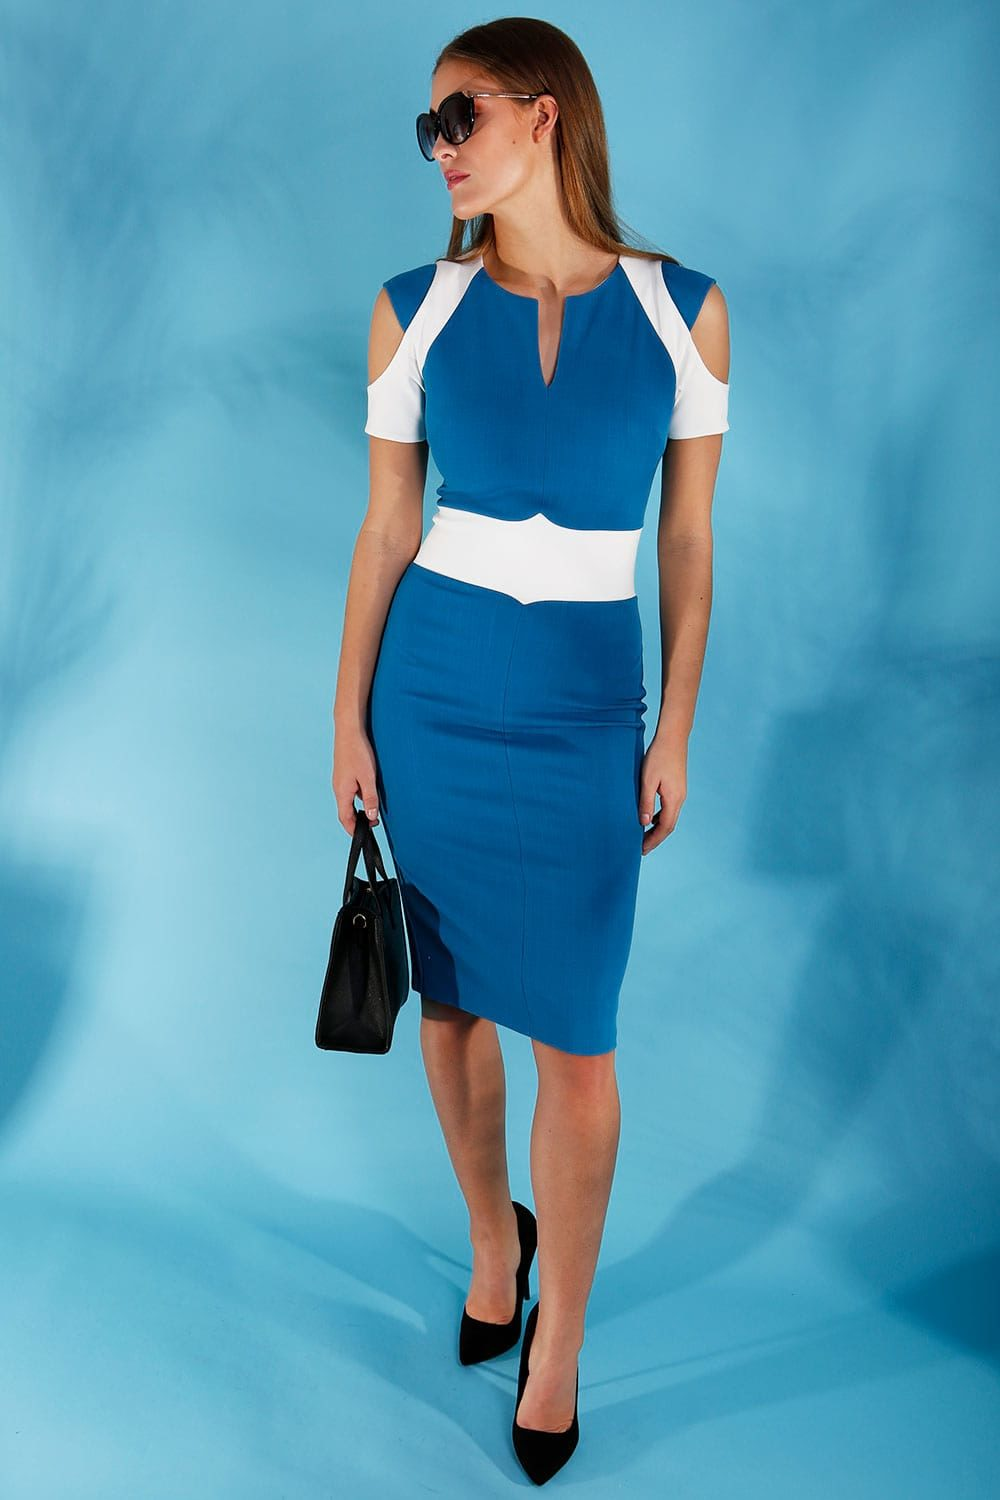 Hybrid Fashion 1294 Emmy Cold Shoulder Contrast Dress